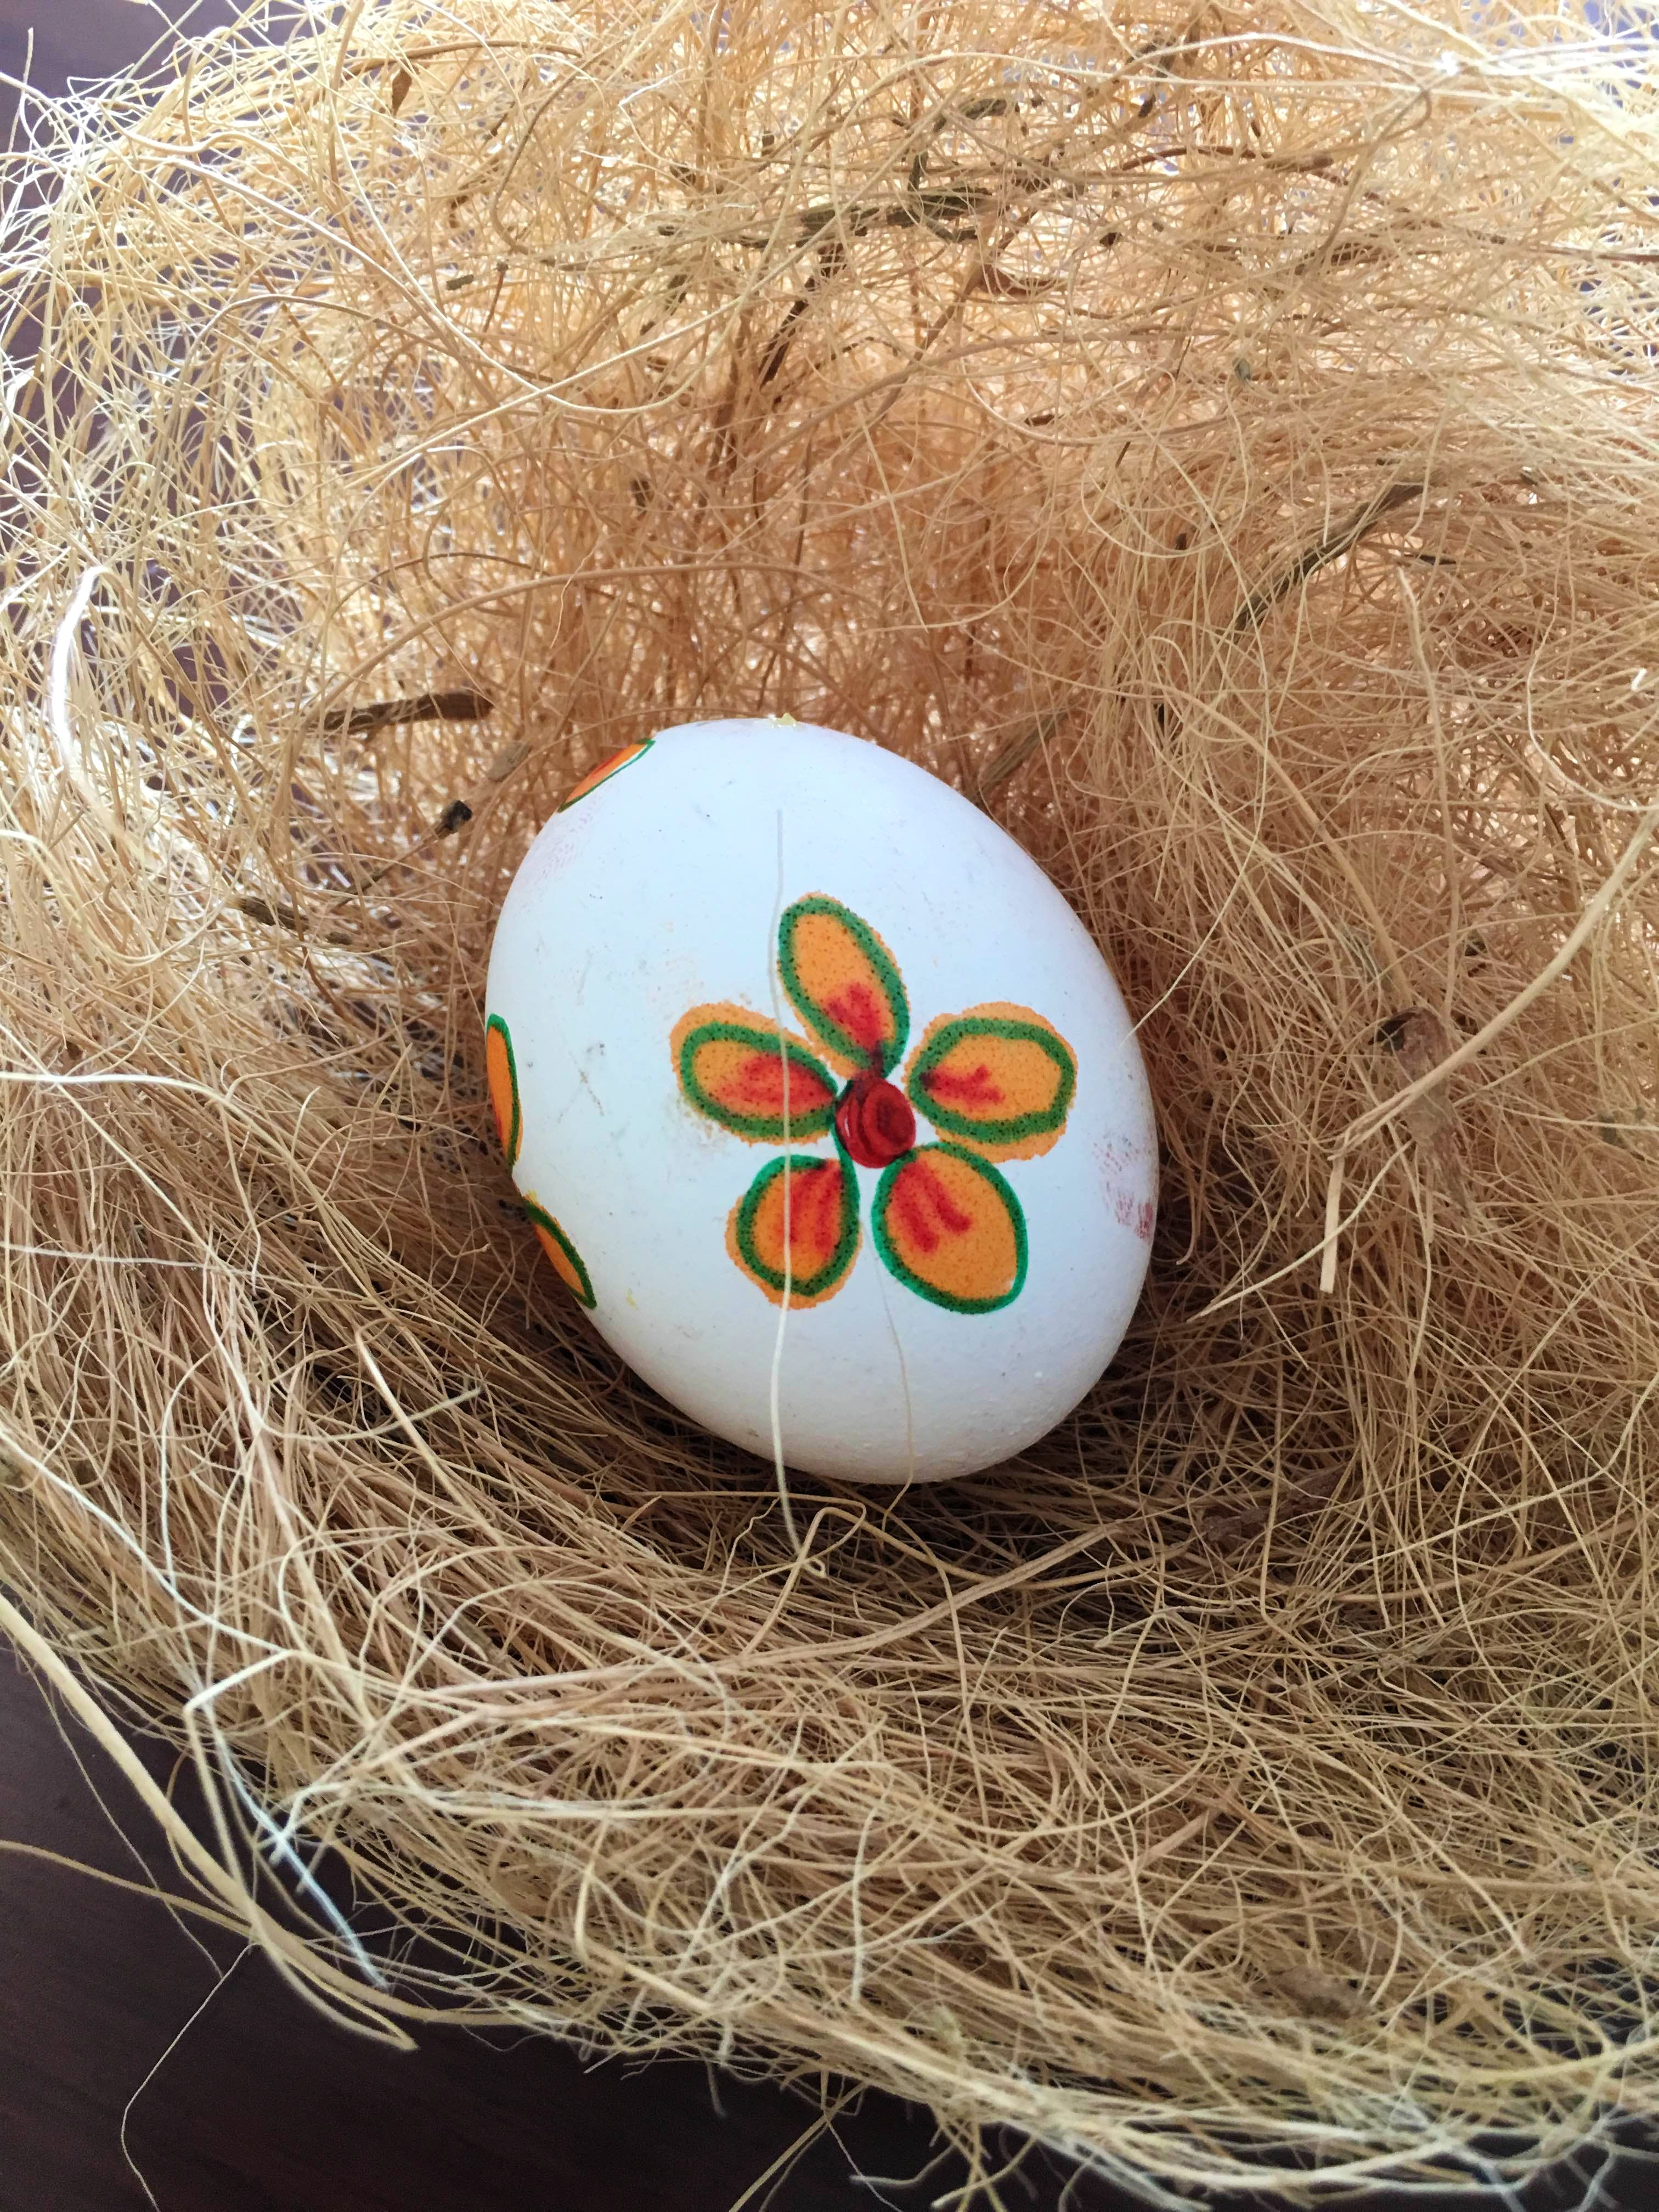 Egg,Easter egg,Bird nest,Nest,Plant,Egg